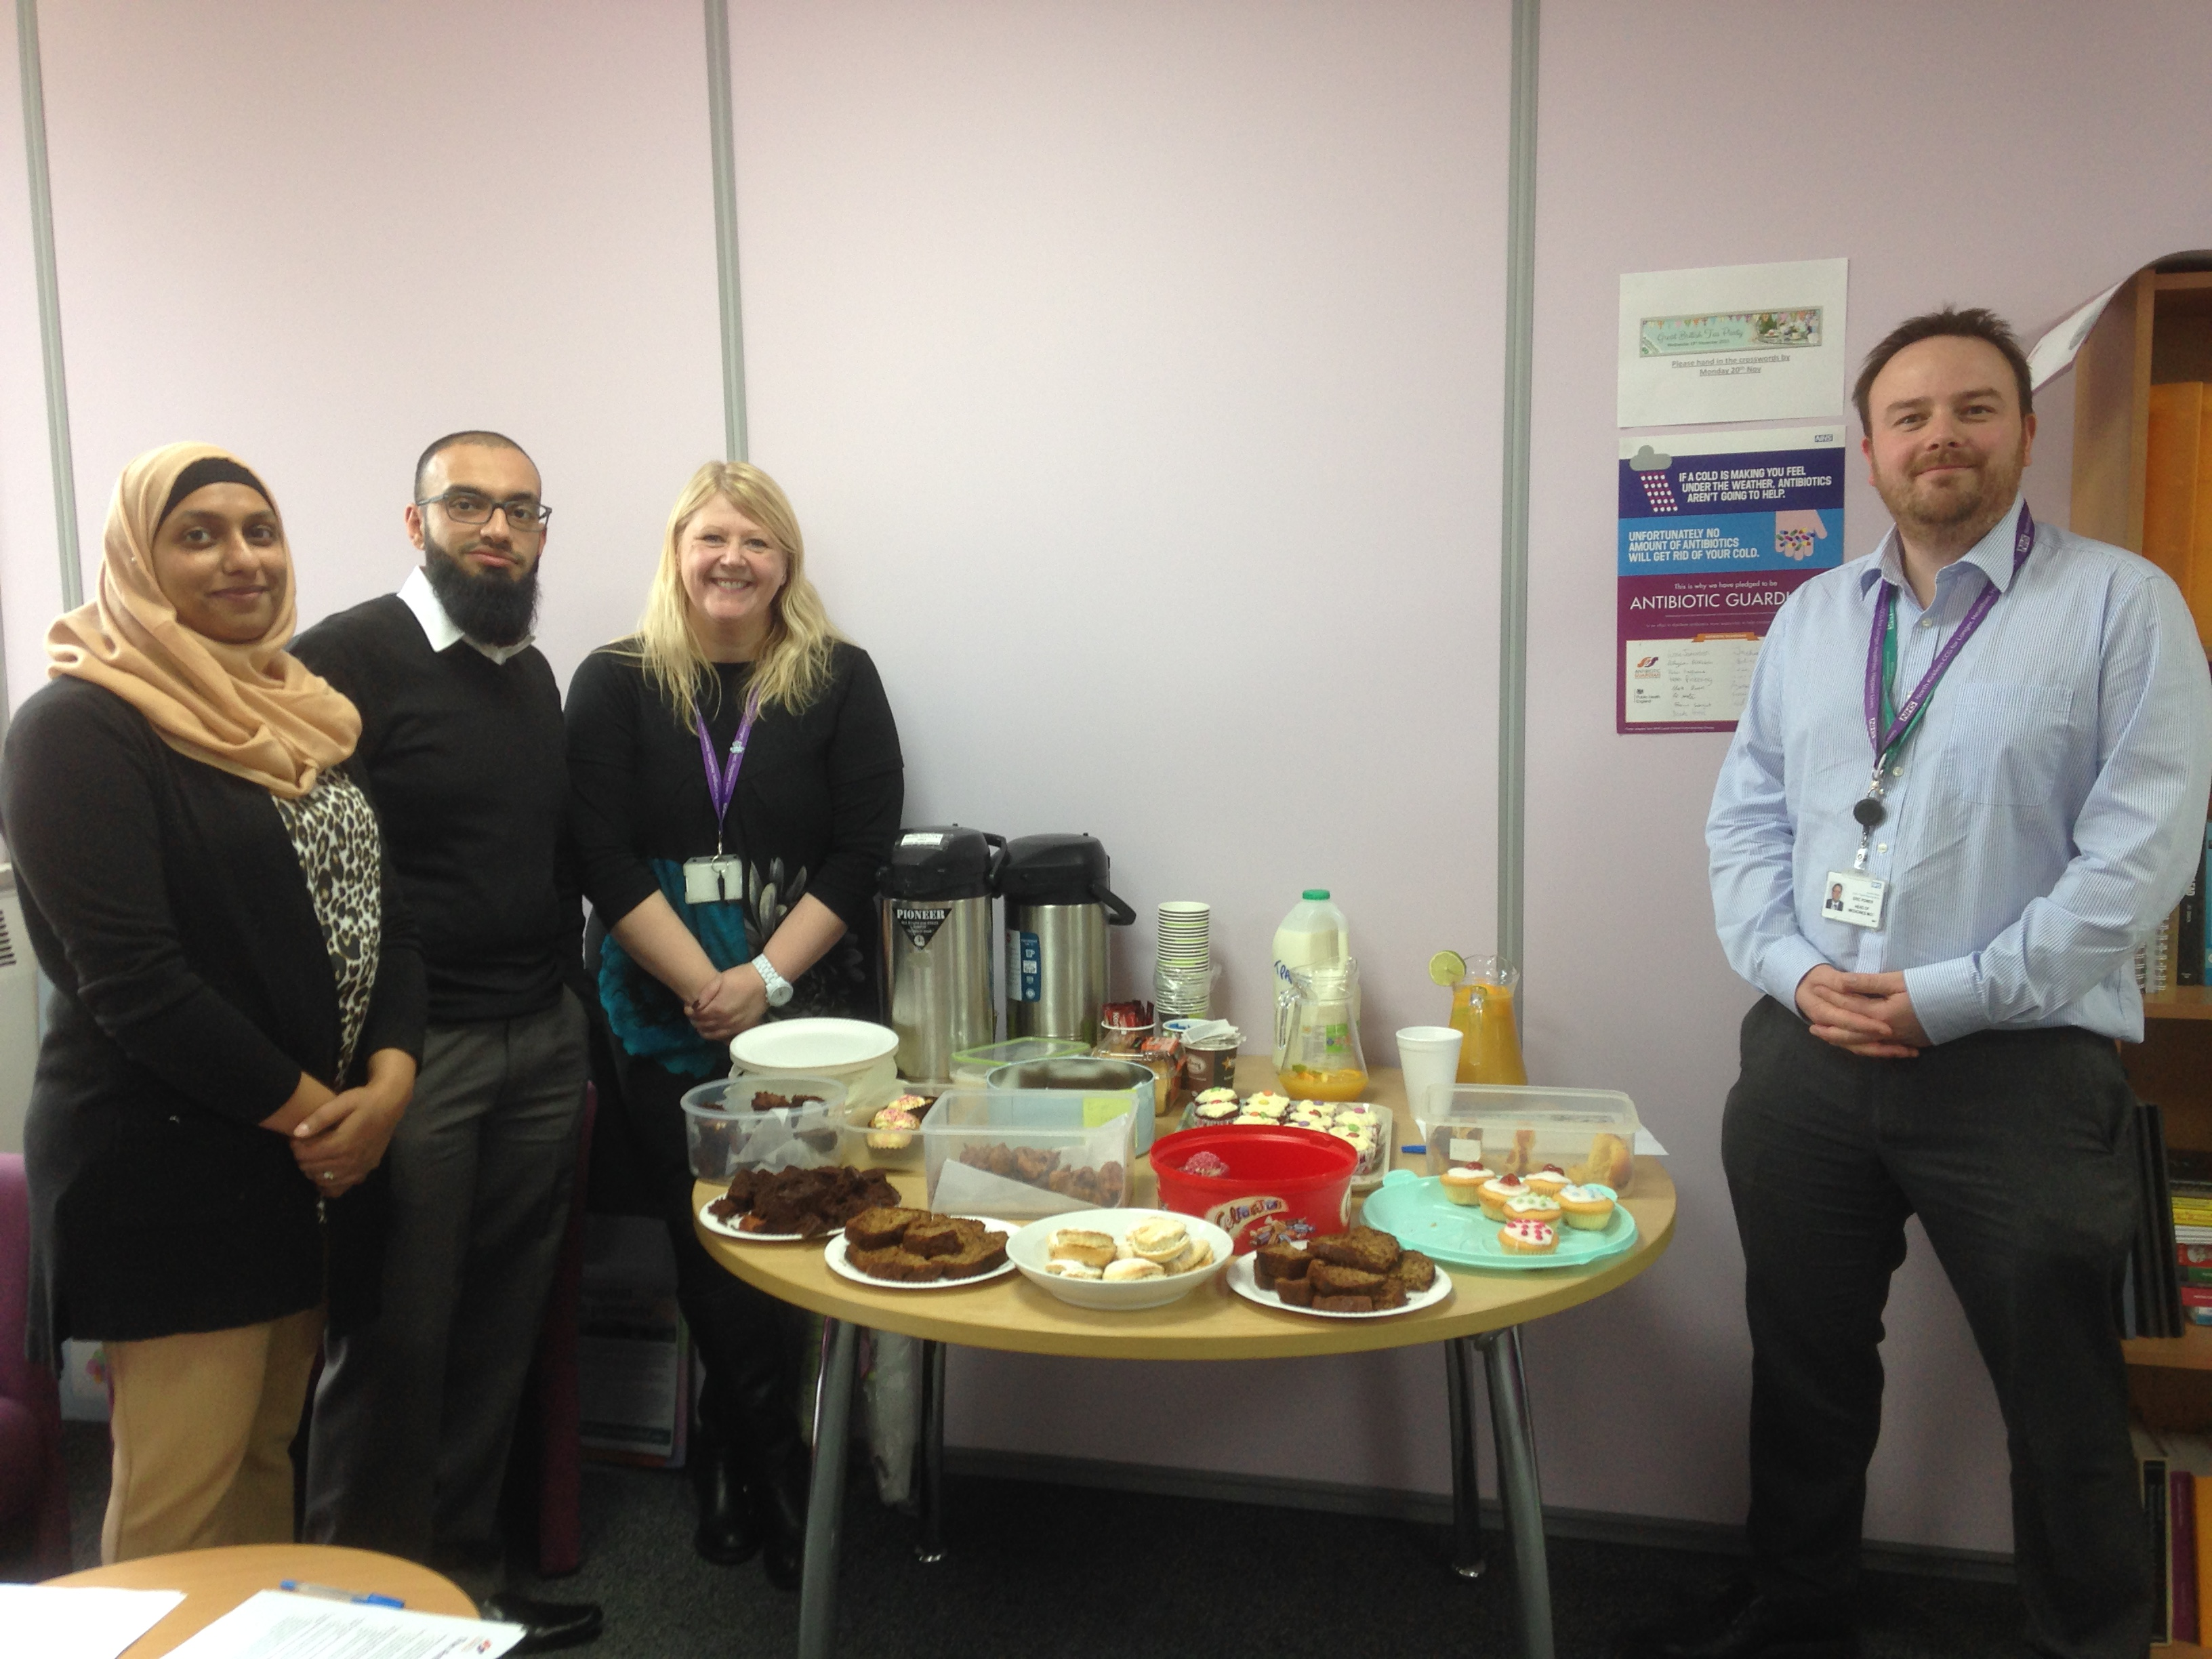 Fatima Gangat and colleagues NHS North Kirklees Clinical Commissioning Groups at their Great British Tea Party